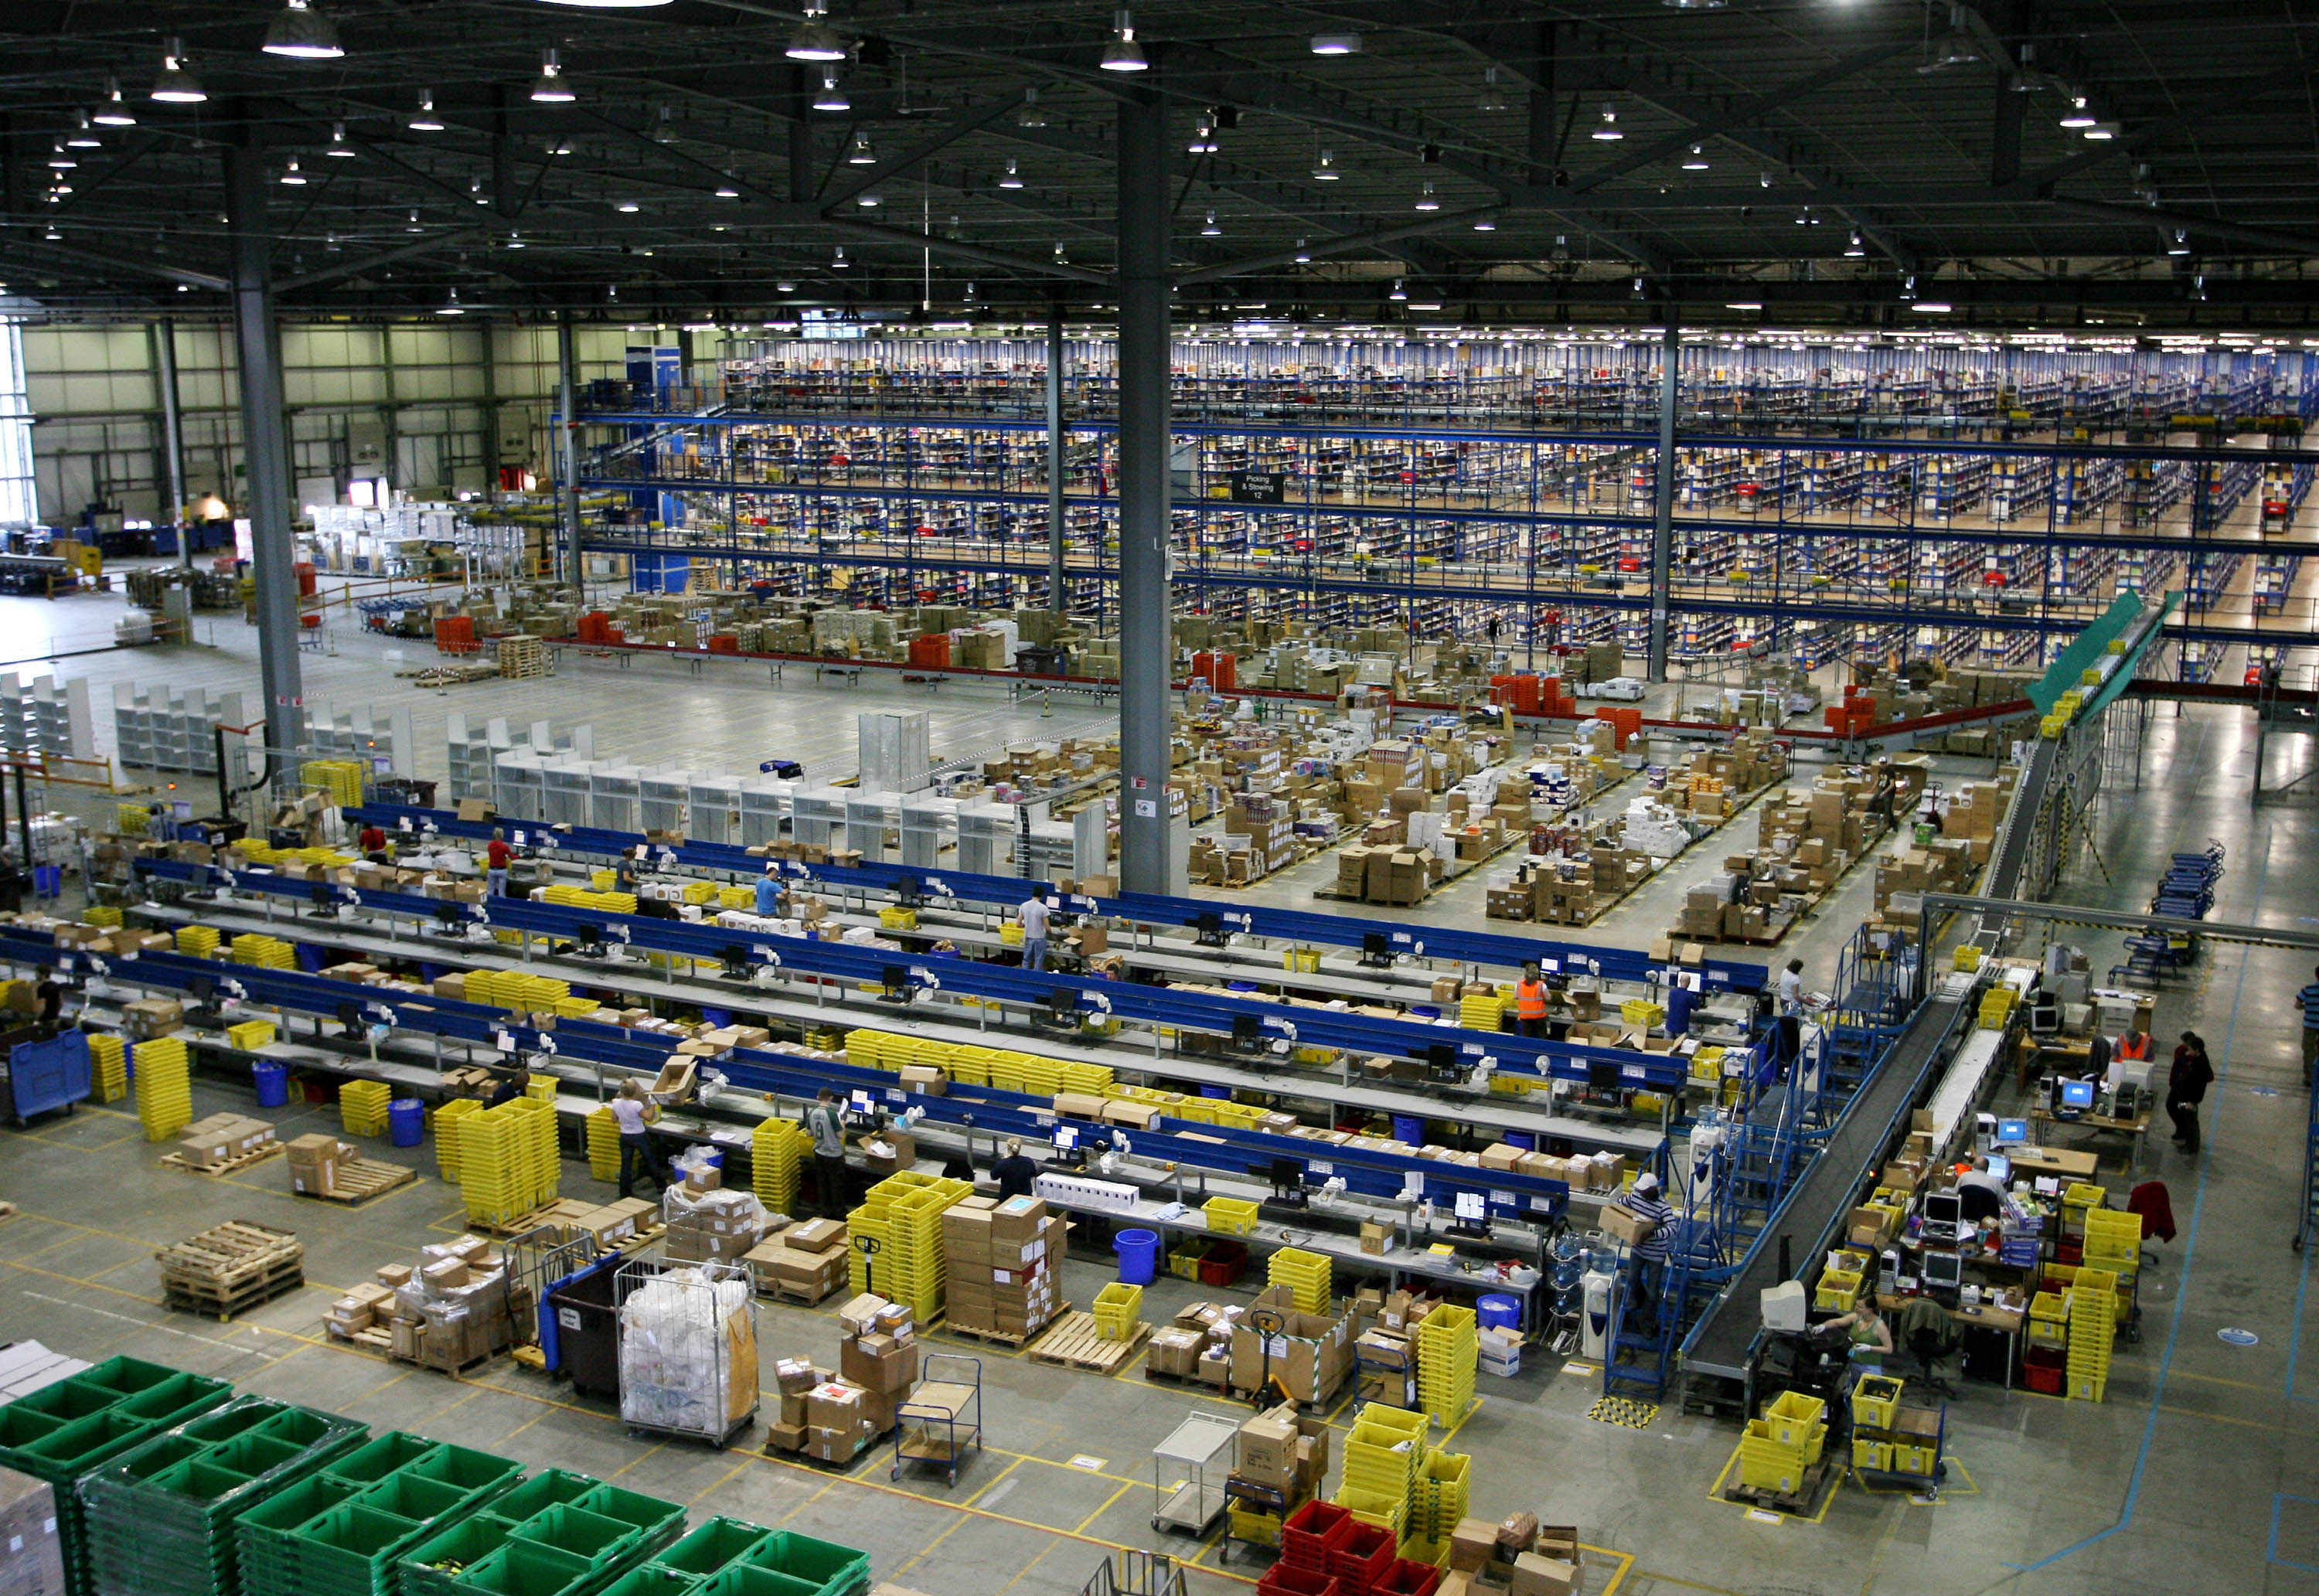 Economies of scale: Packers work at an Amazon warehouse in Milton Keynes, England. Japan's saihan seido pricing system may not be enough to save remaining bookstores, whose advantages Amazon.jp has systematically nullified over the years.   BLOOMBERG